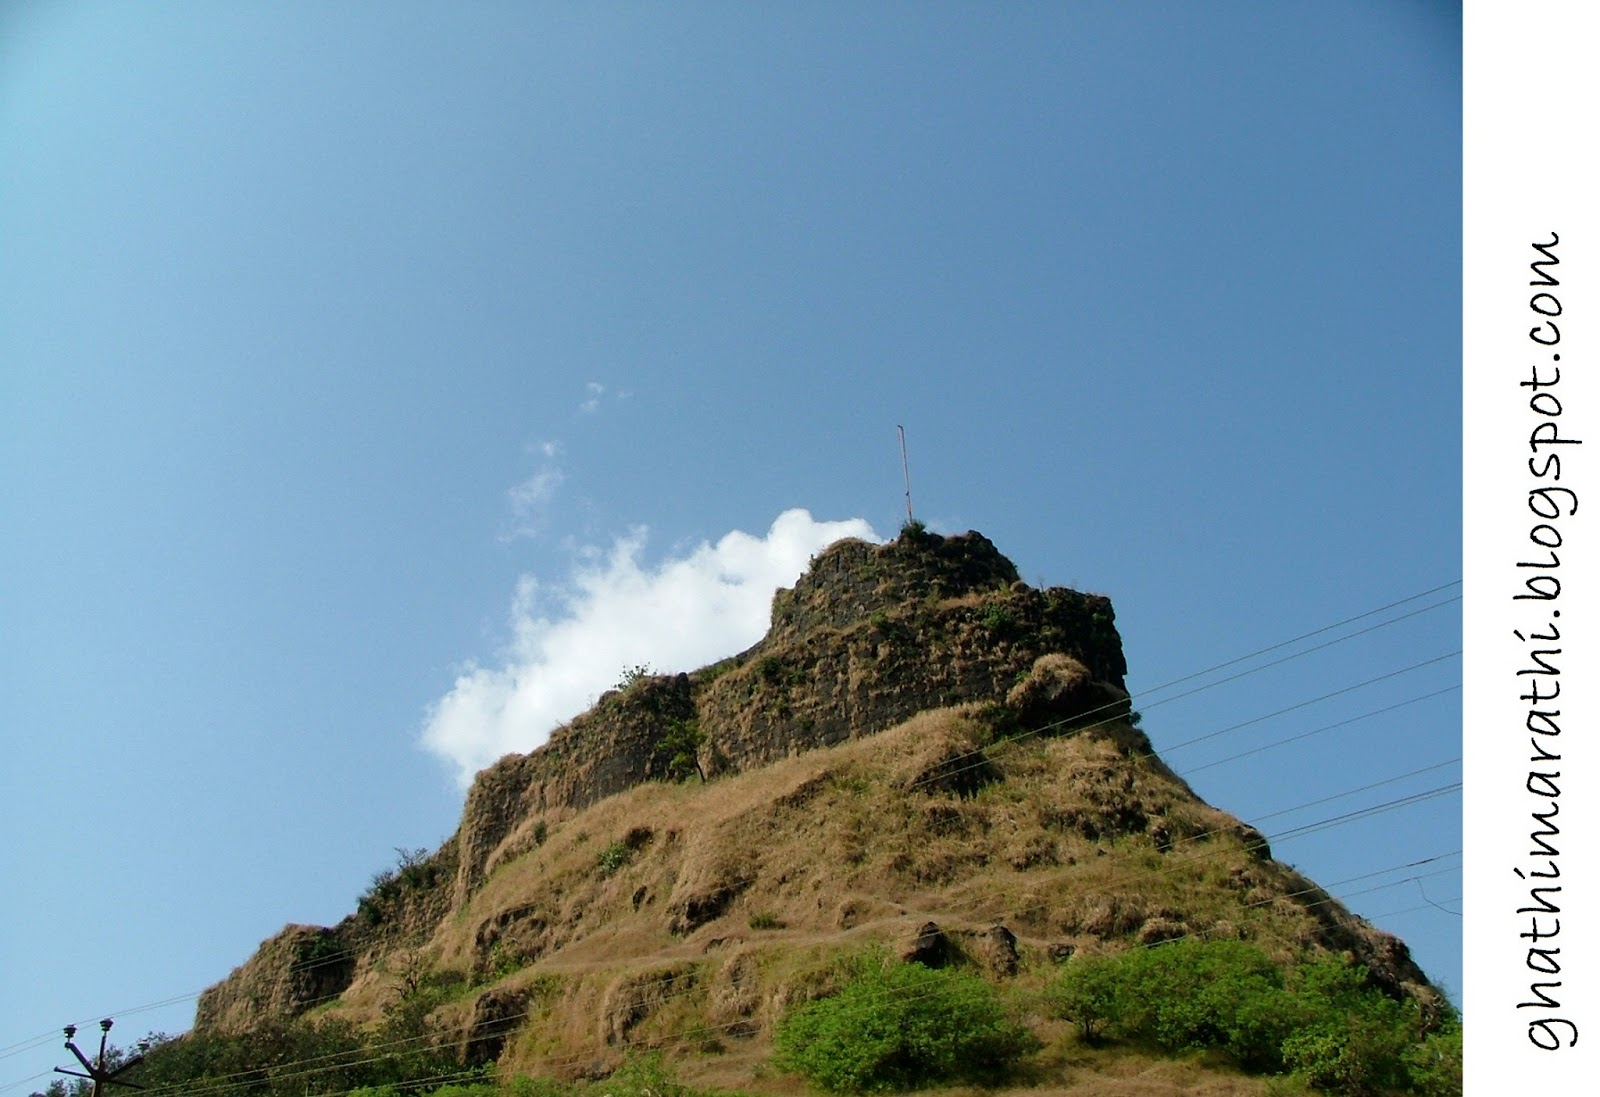 shivaji maharaj pratapgad fort photo images wallpapers